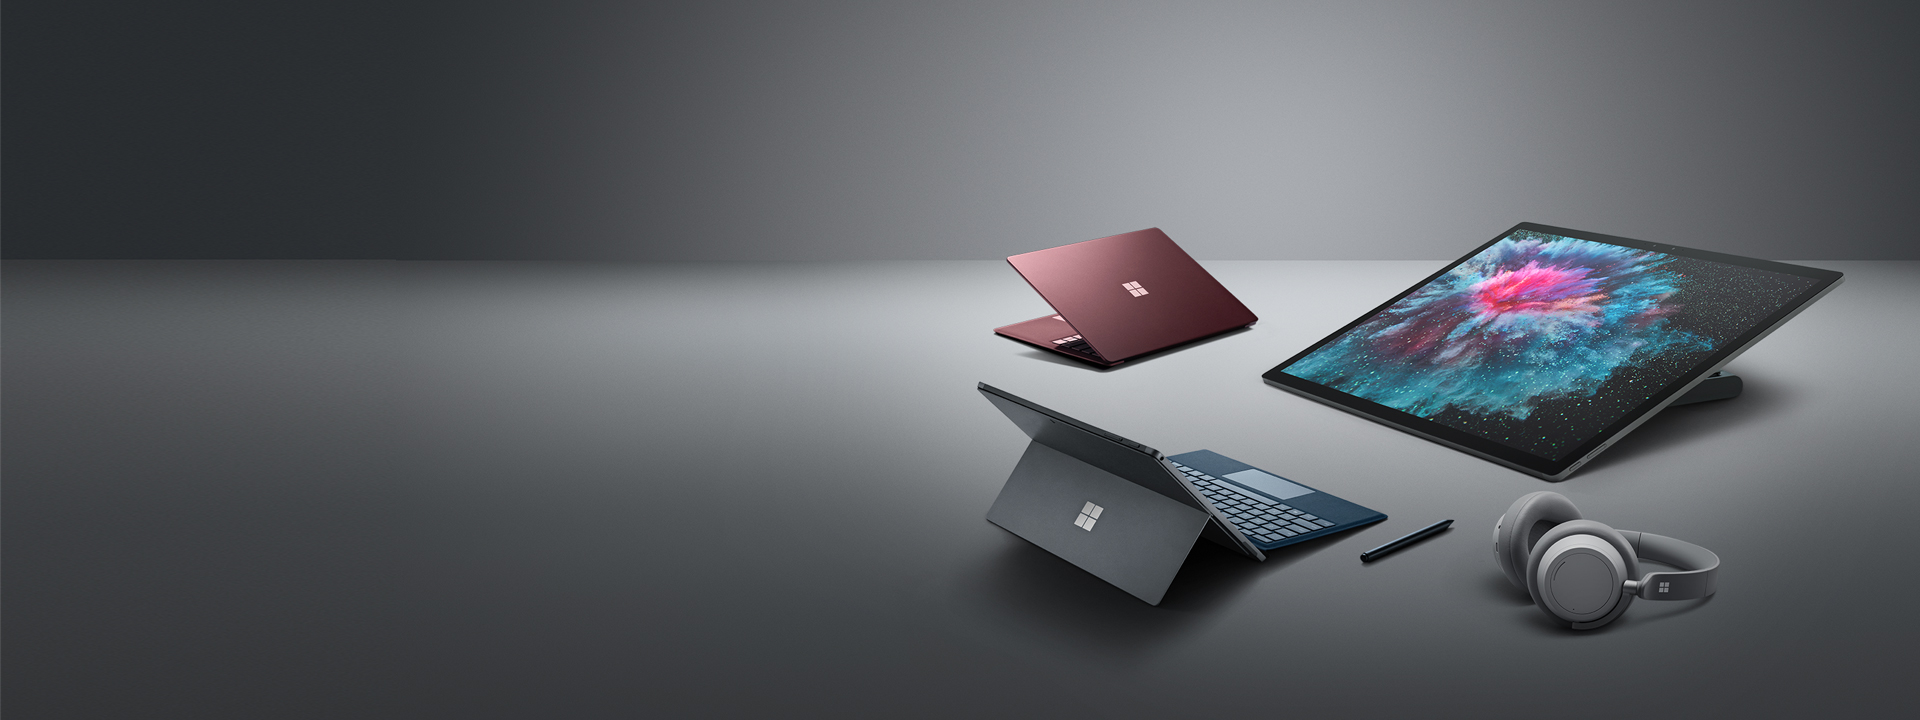 Surface Laptop 2, Surface Pro 6, Surface Studio 2, Surface Headphones et stylet pour Surface